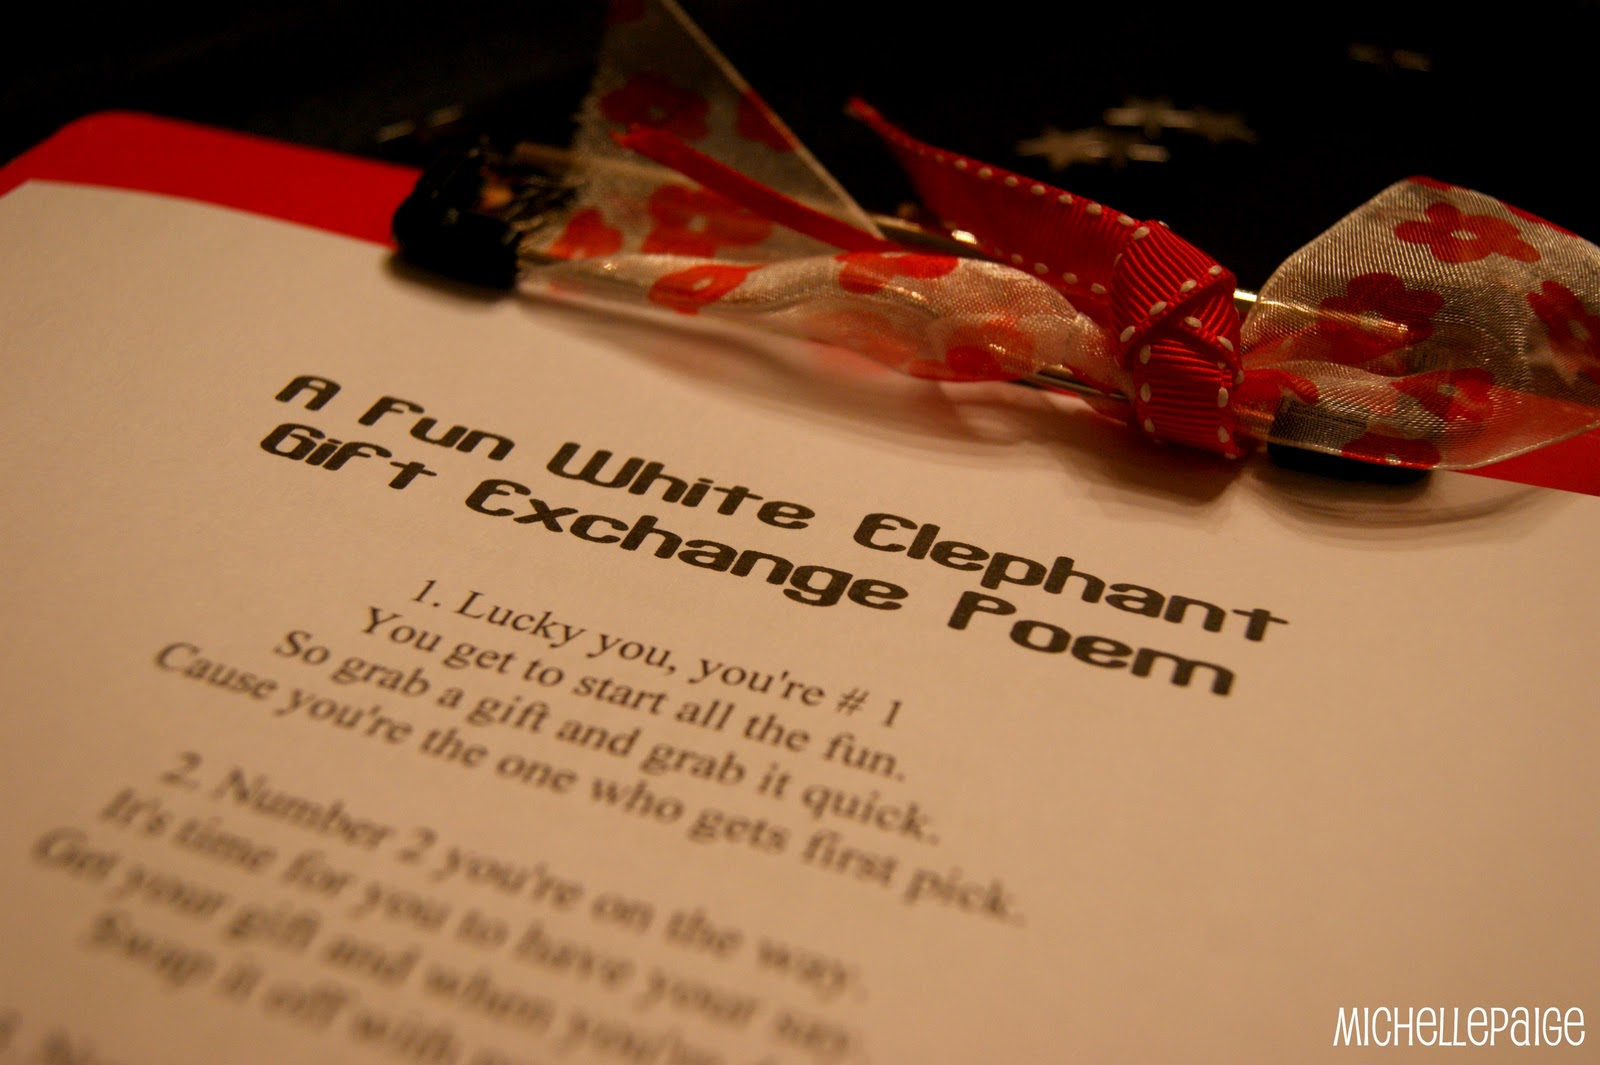 michelle paige blogs: White Elephant Gift Exchange Poem